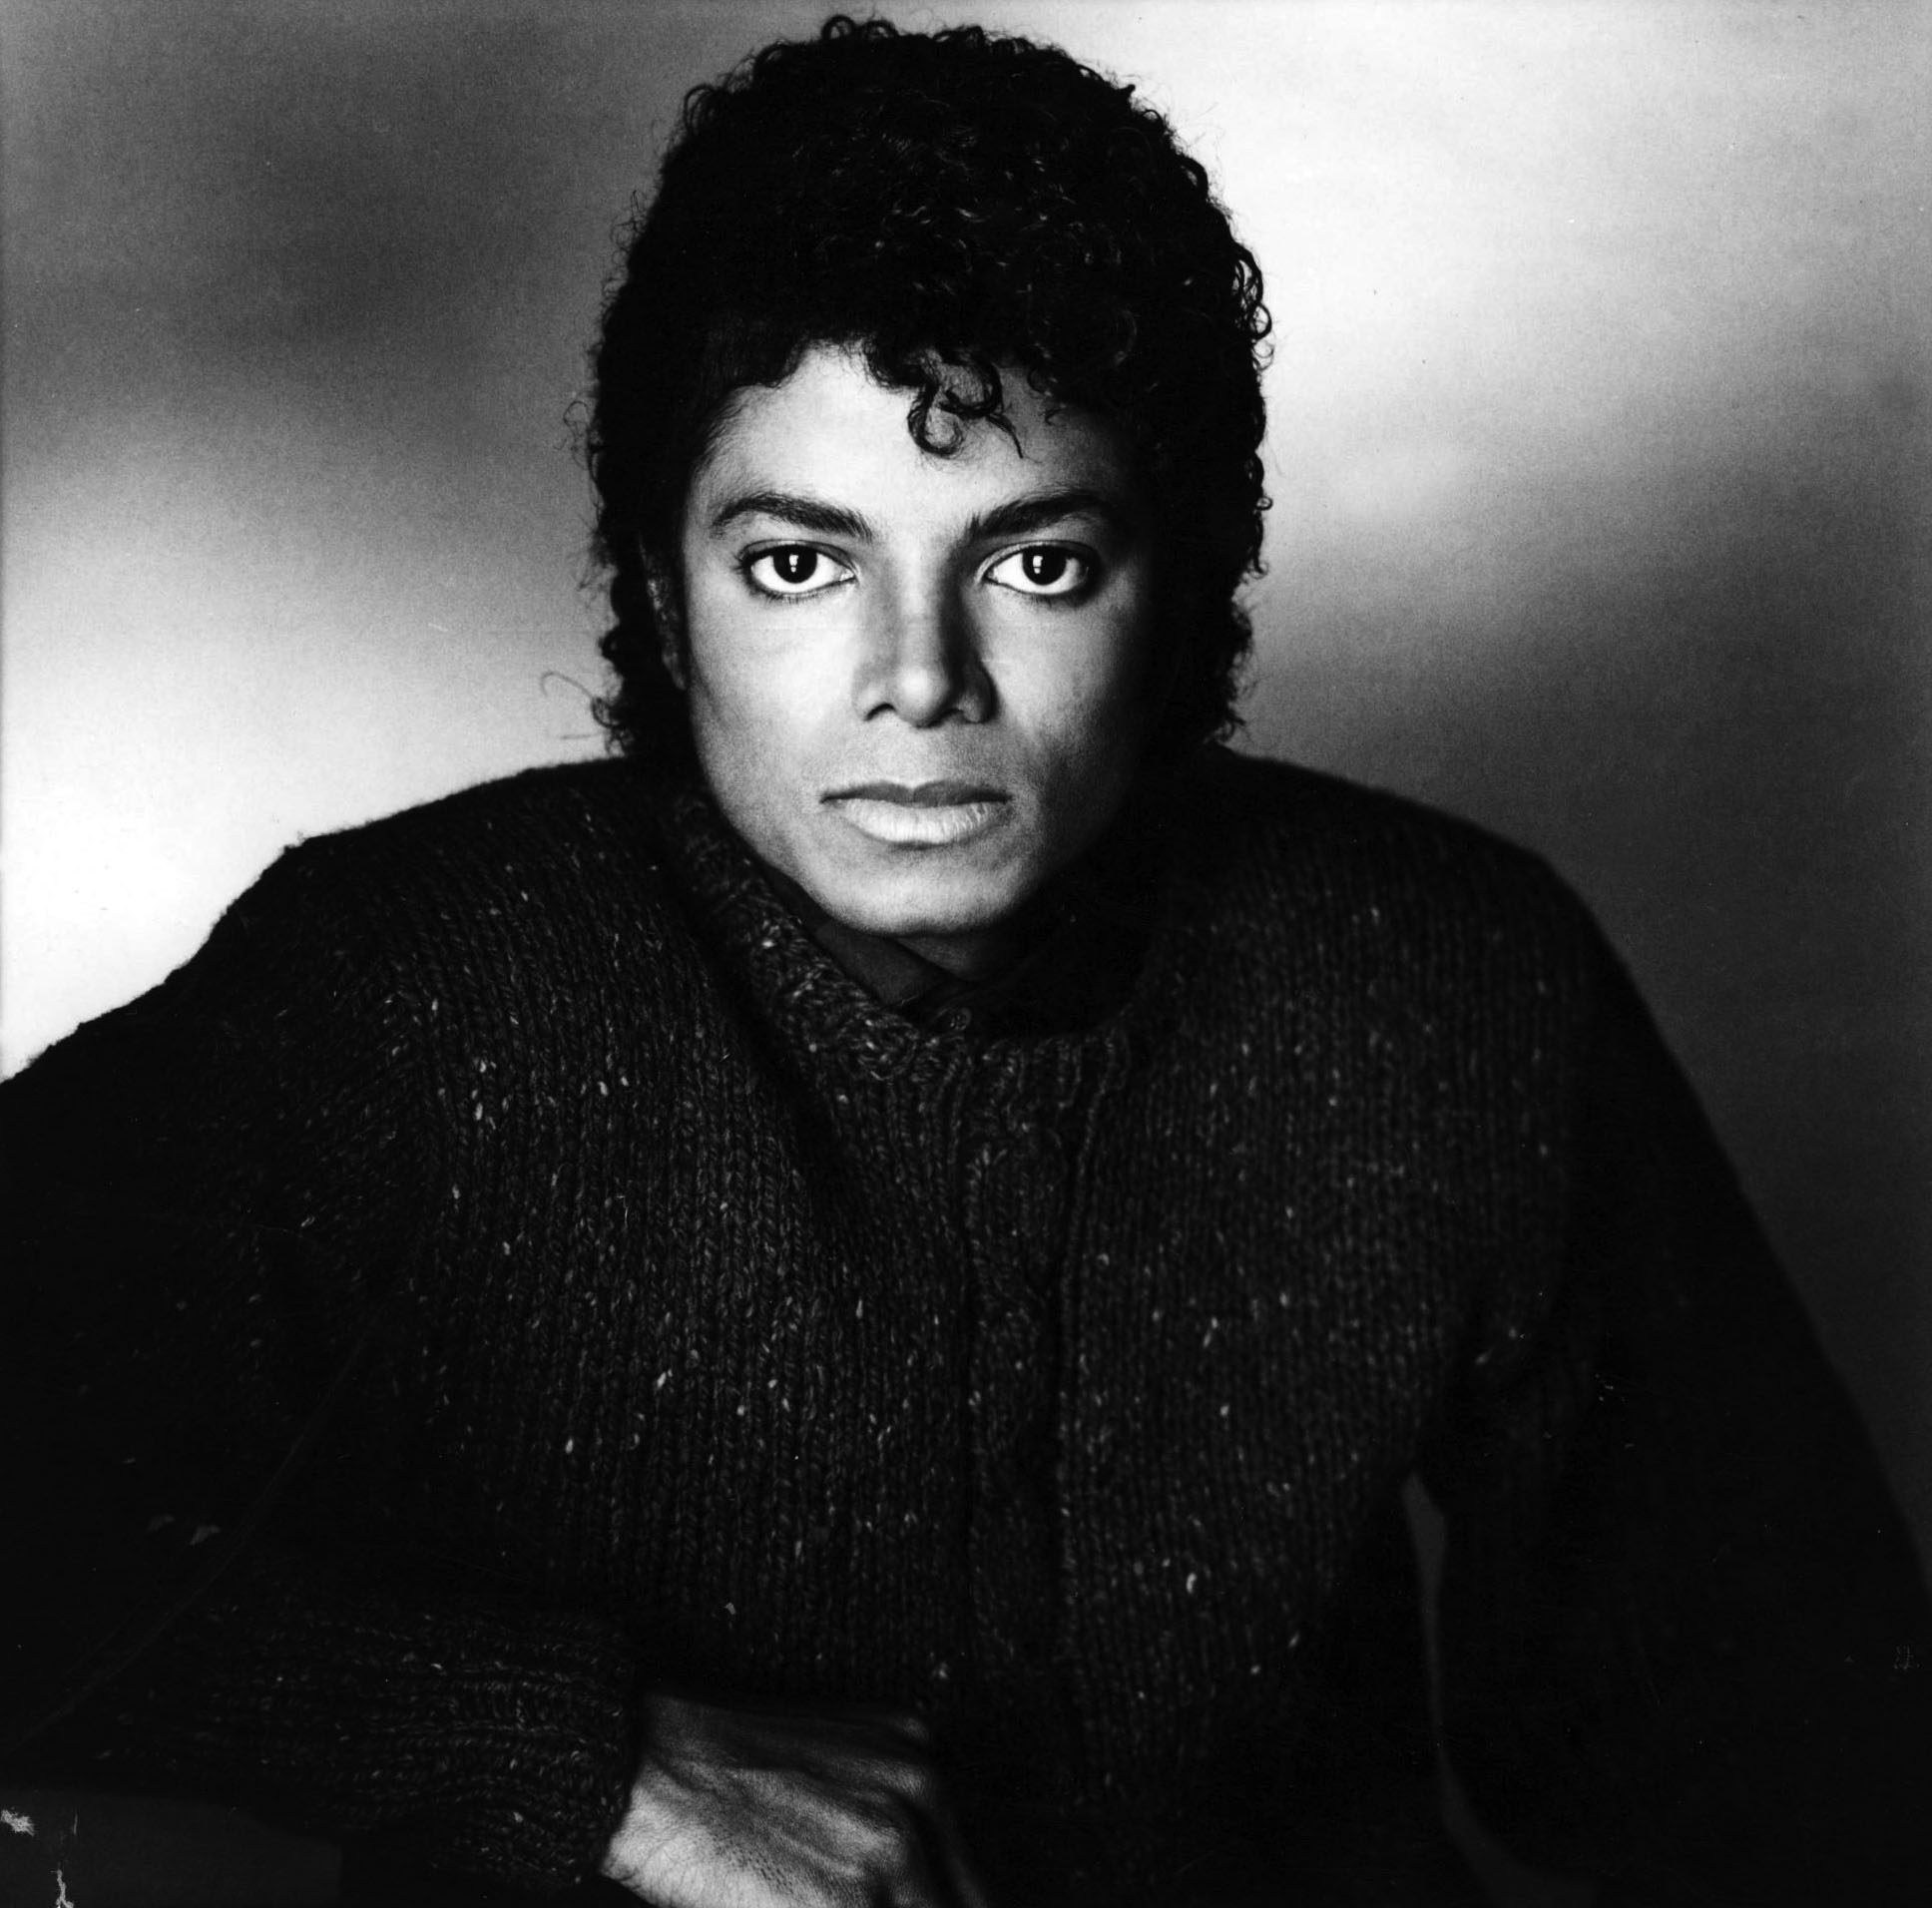 https://i2.wp.com/images2.fanpop.com/image/photos/10900000/Michael-Jackson-michael-jackson-10989836-1936-1912.jpg